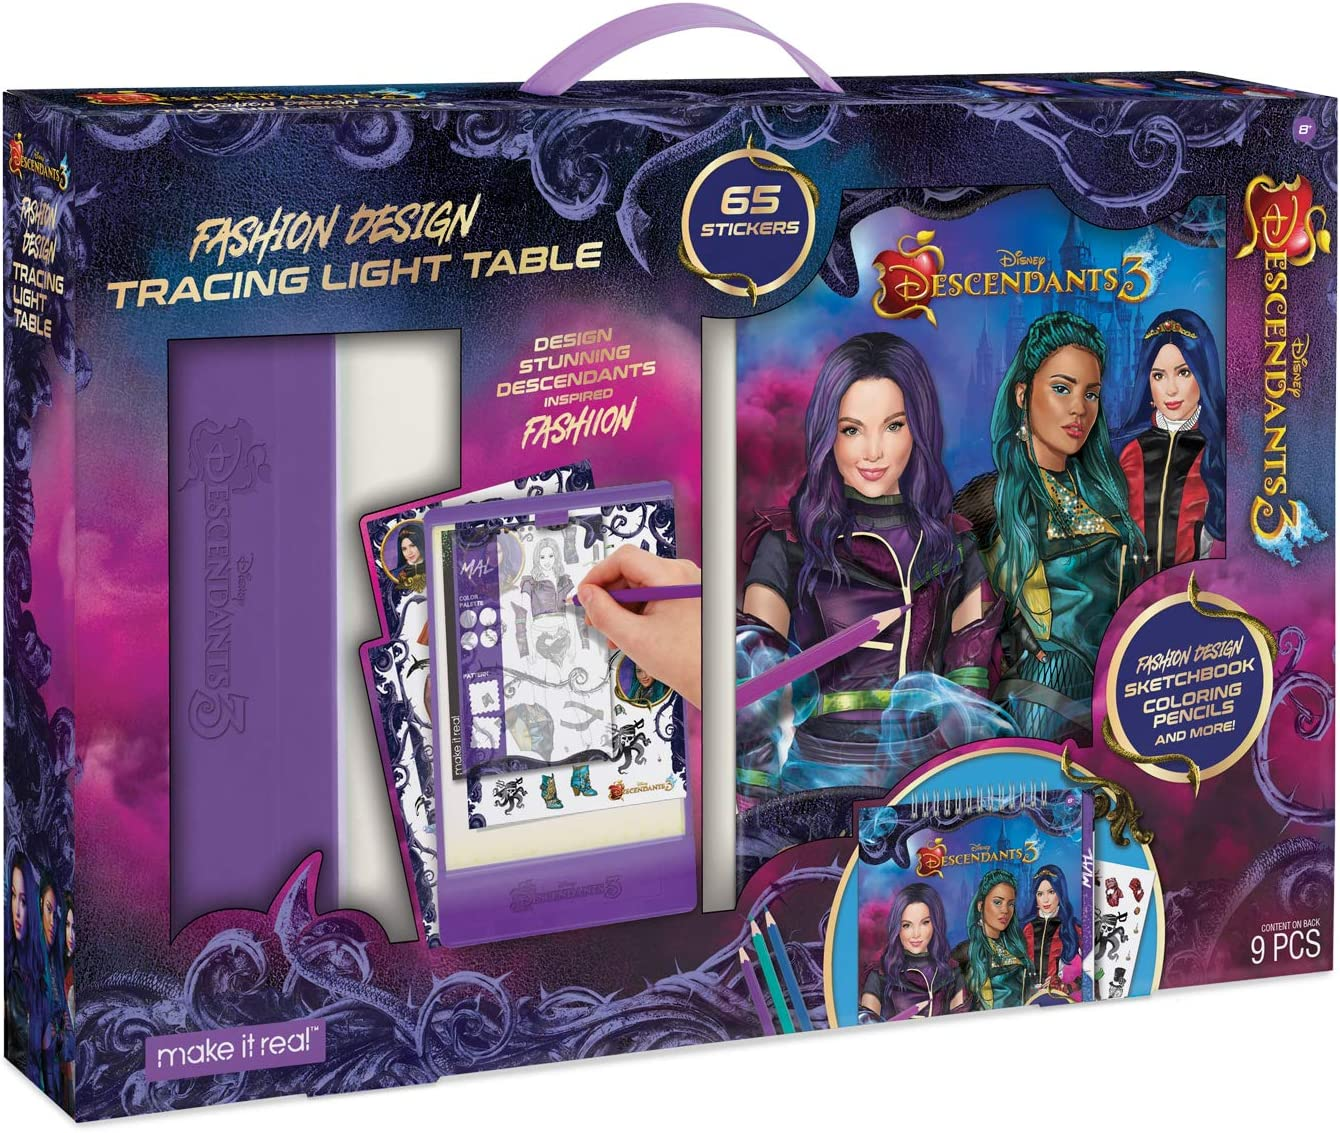 Amazon Com Make It Real Disney Descendants 3 Sketchbook With Tracing Light Table Fashion Design Tracing And Drawing Kit For Girls Includes Sketch Pages Stencils Stickers And Backlit Tracing Pad Toys